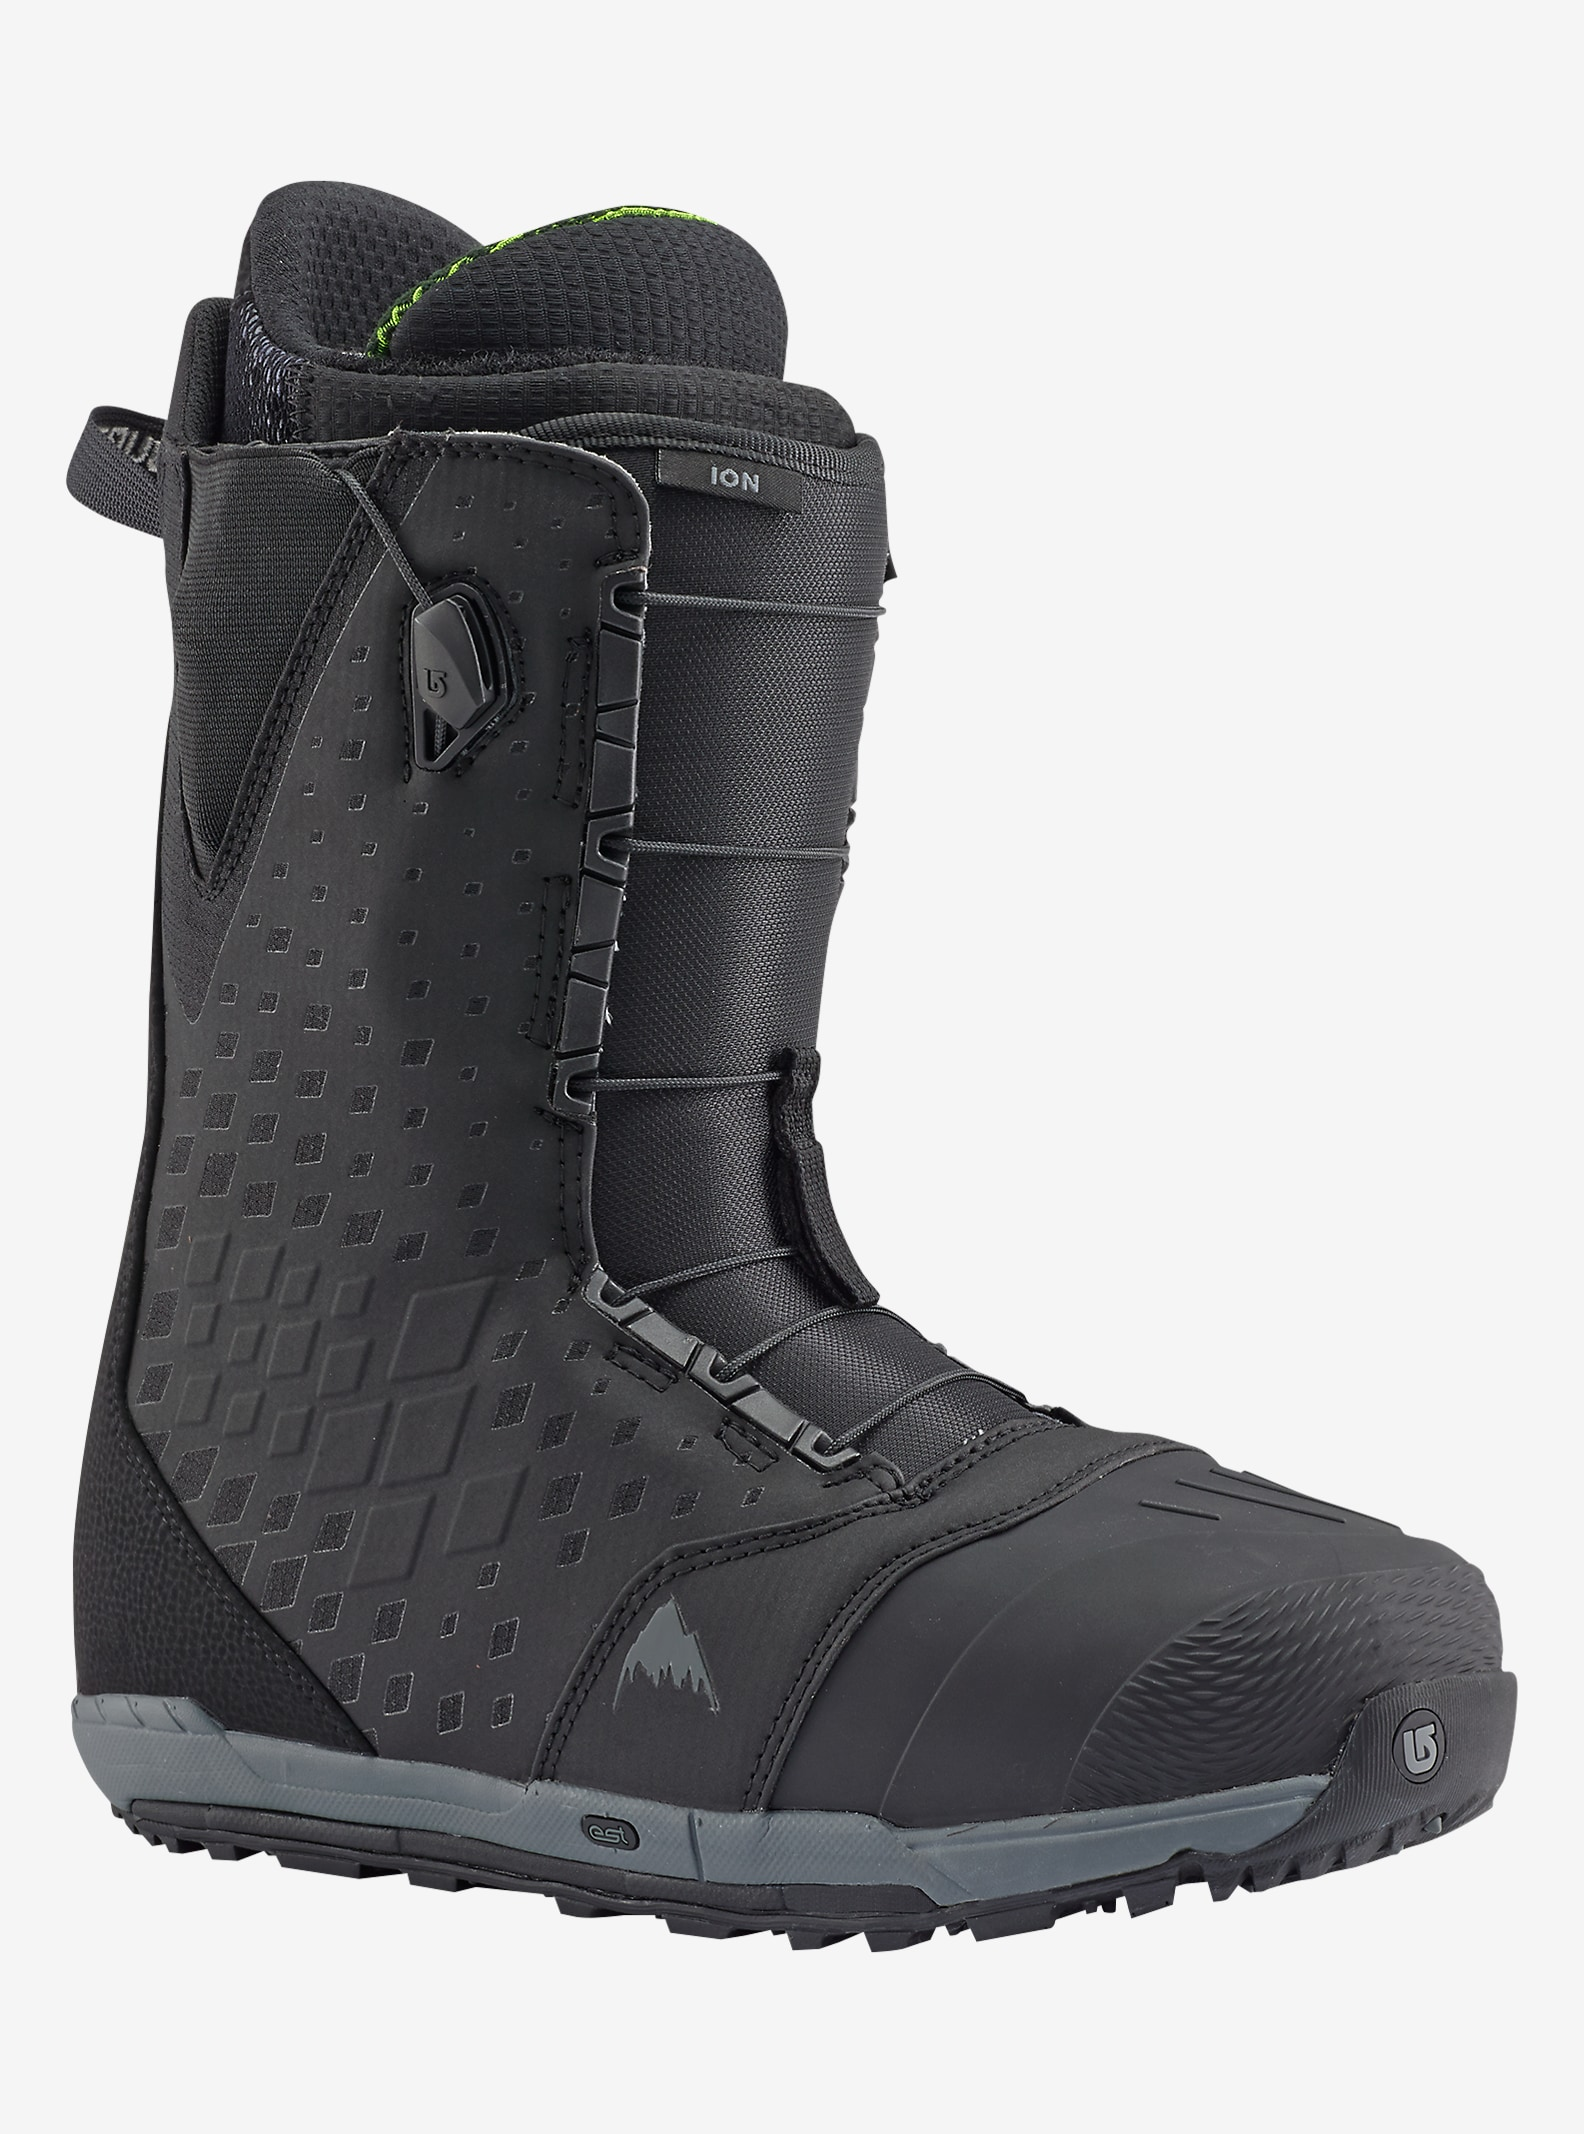 Burton Ion Snowboard Boot shown in Black